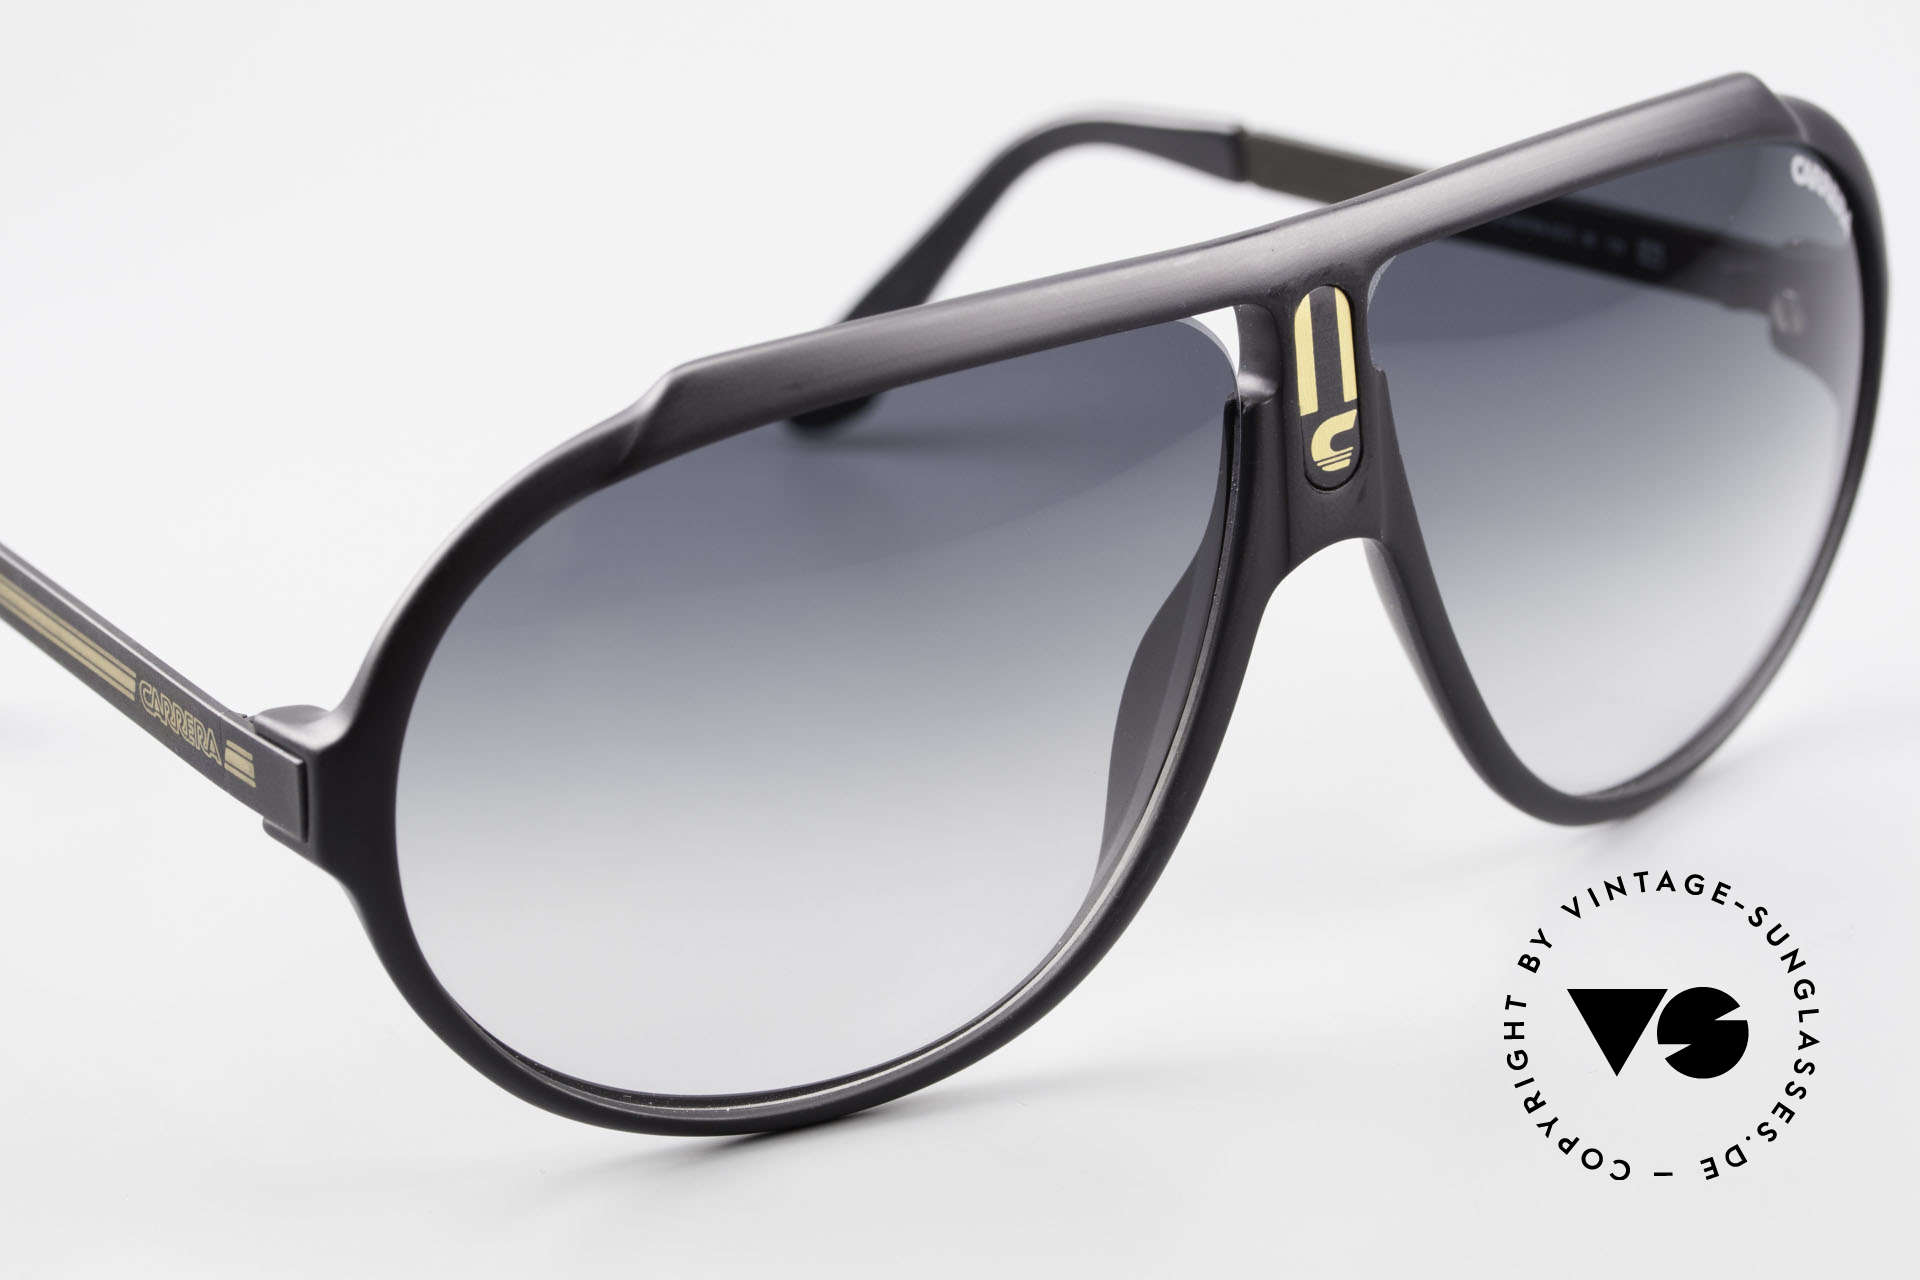 Carrera 5512 Iconic 80's Shades True Vintage, NO RETRO SHADES; but a rare 30 years old ORIGINAL, Made for Men